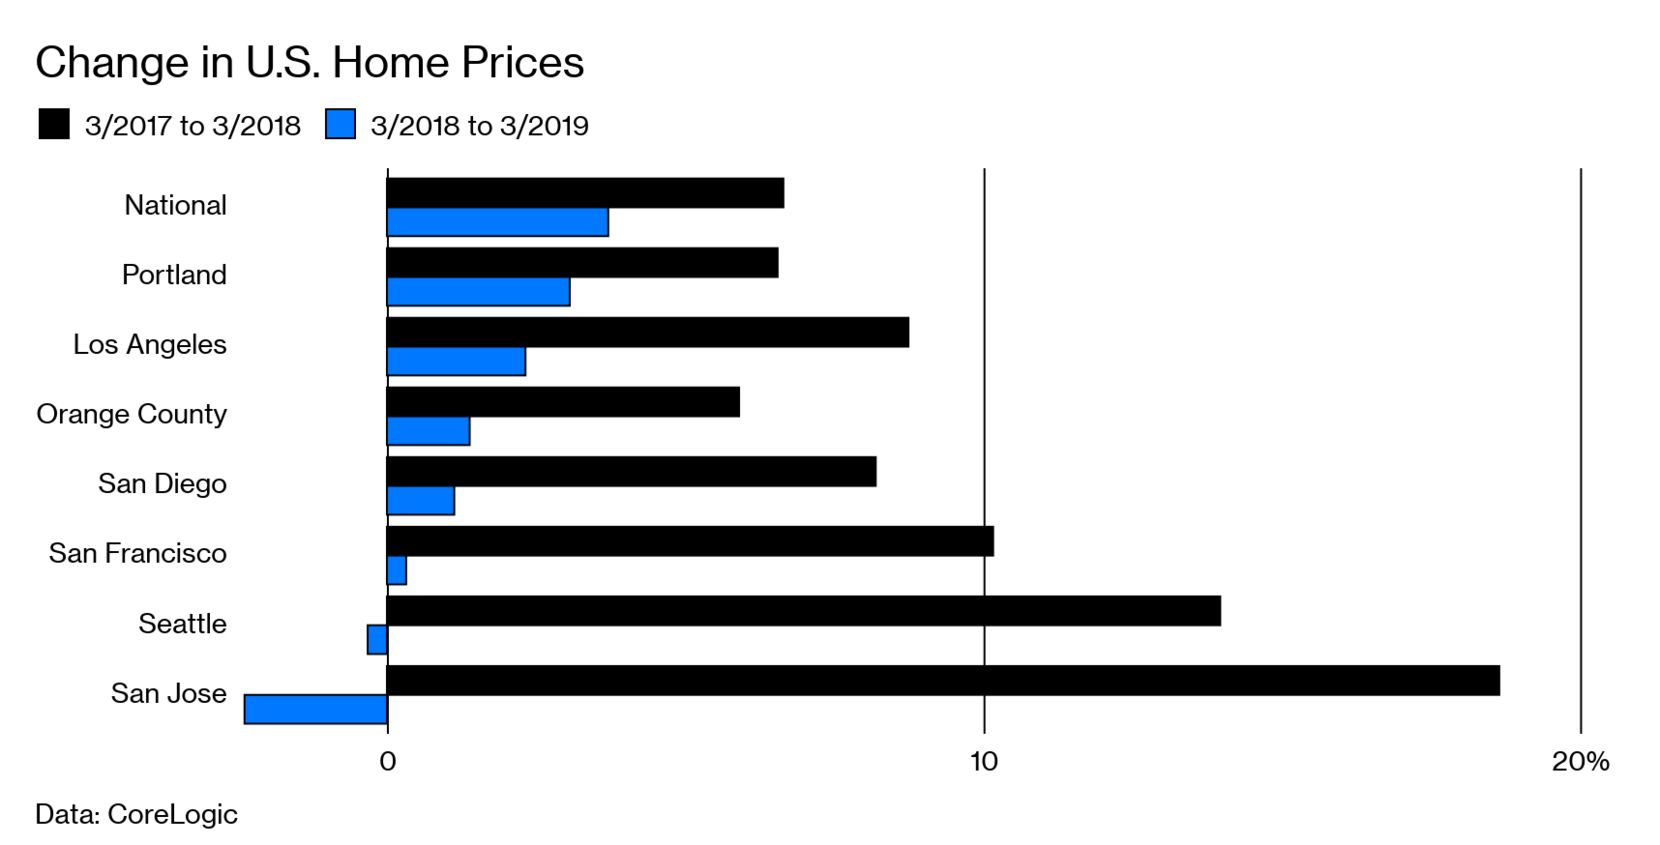 Change in U.S. Home Prices